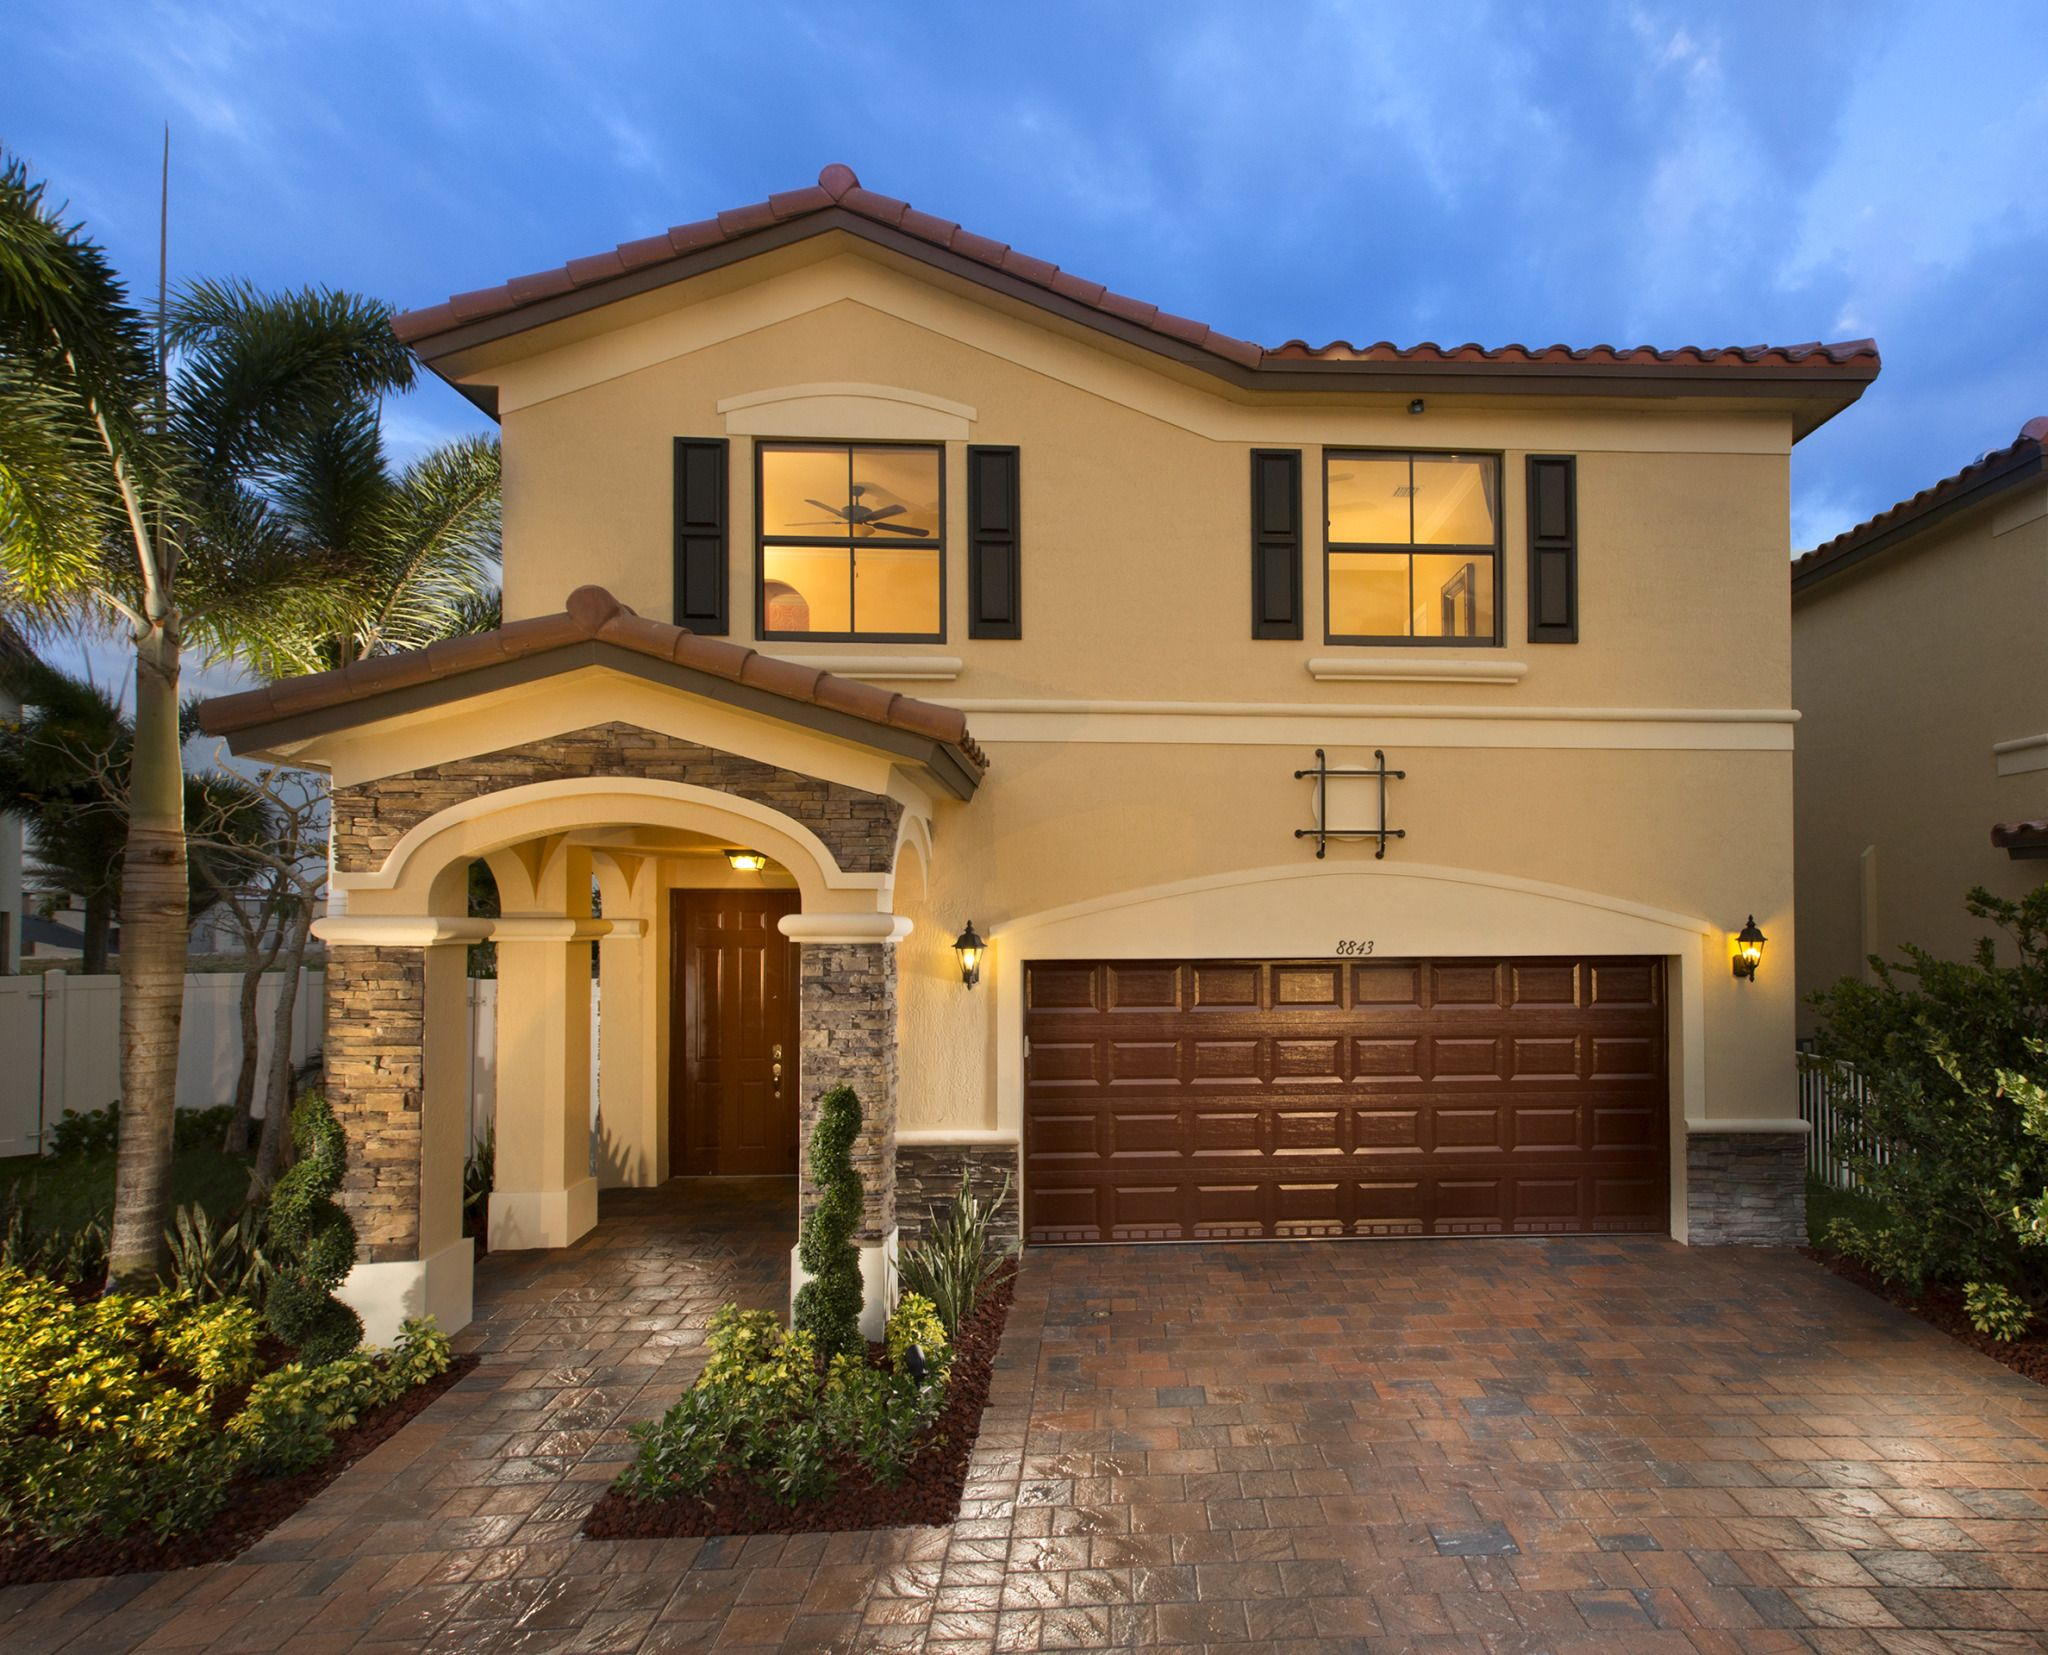 This Can Be A Innovative Image Of Patio Homes for Sale Tampa Fl